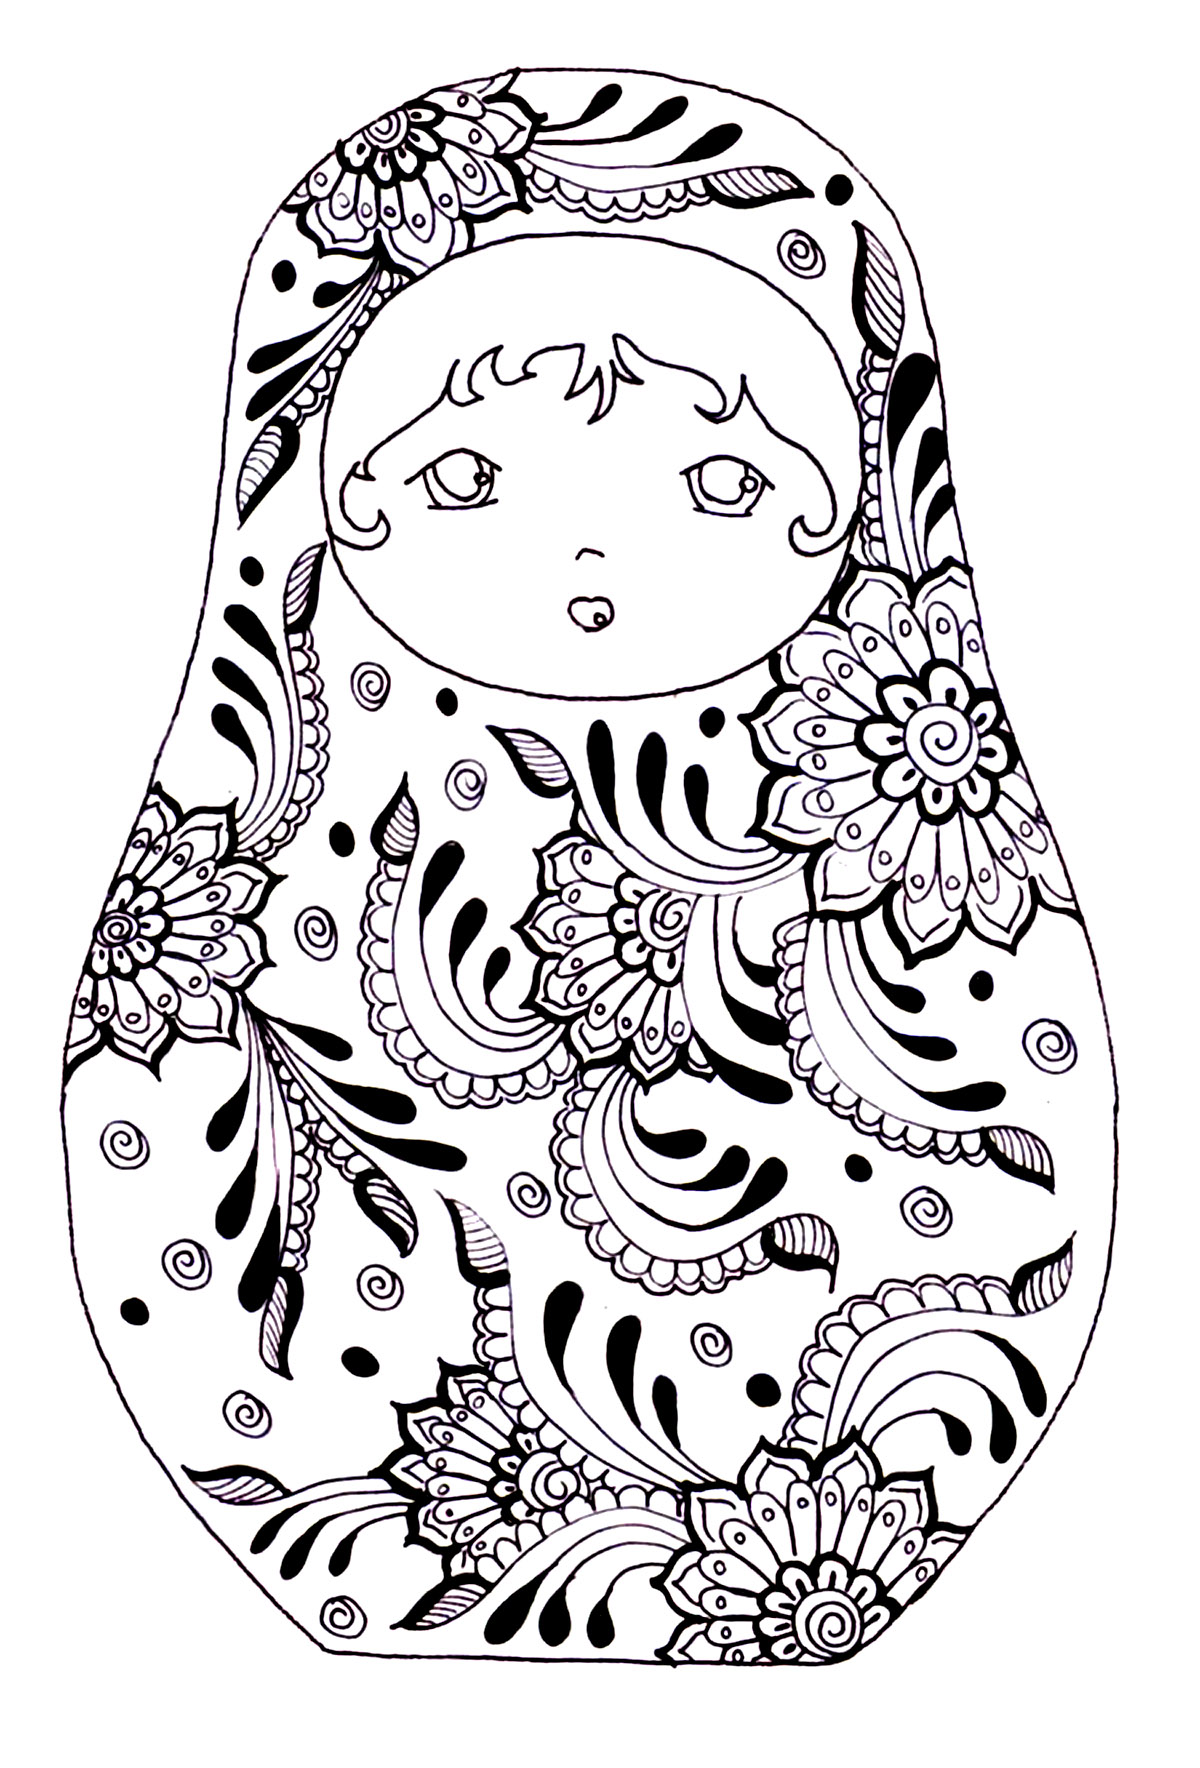 Russia Coloring Pages For Adults